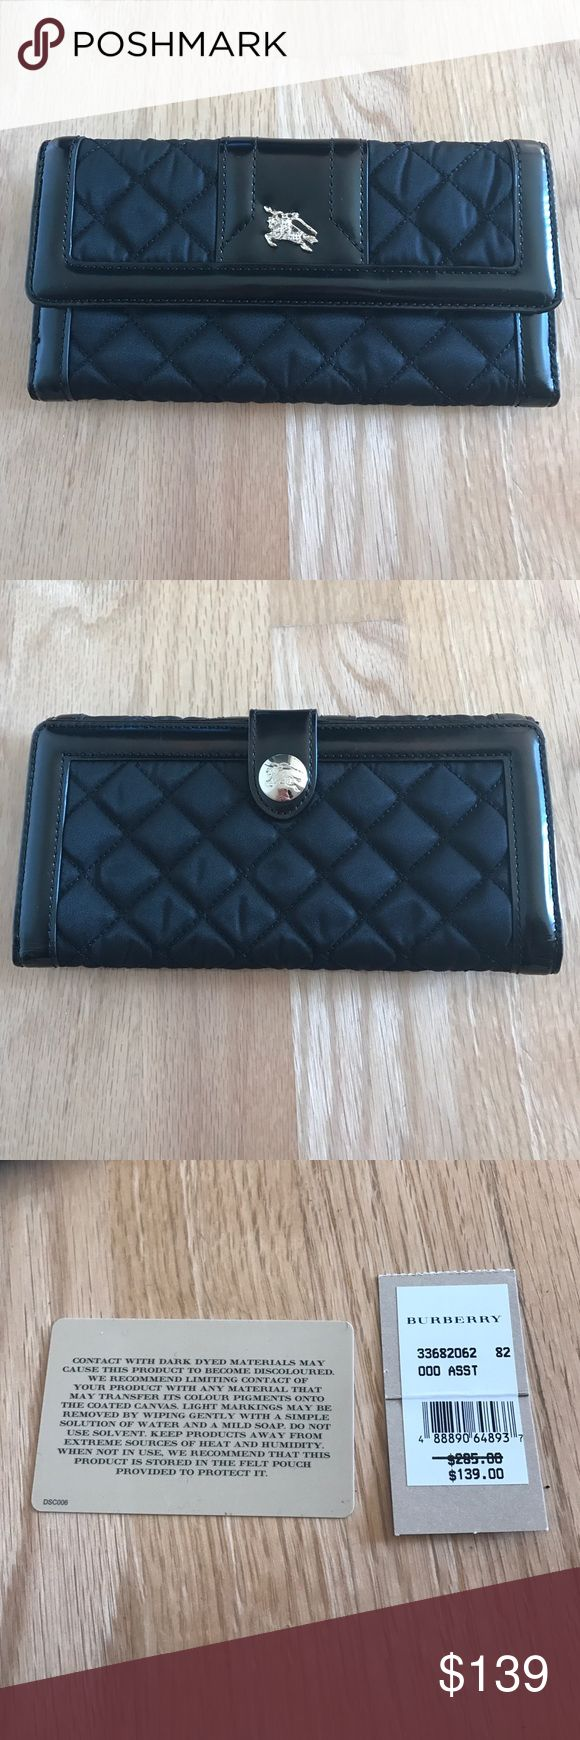 Black Leather and Nylon Burberry Wallet Gently used black leather and nylon Burberry wallet. Comes with dust bag and tags. One side carries coins or receipts. Other side has 3 pockets for cash and receipts and 6 pockets for cards. This wallet is authentic. Burberry Bags Wallets